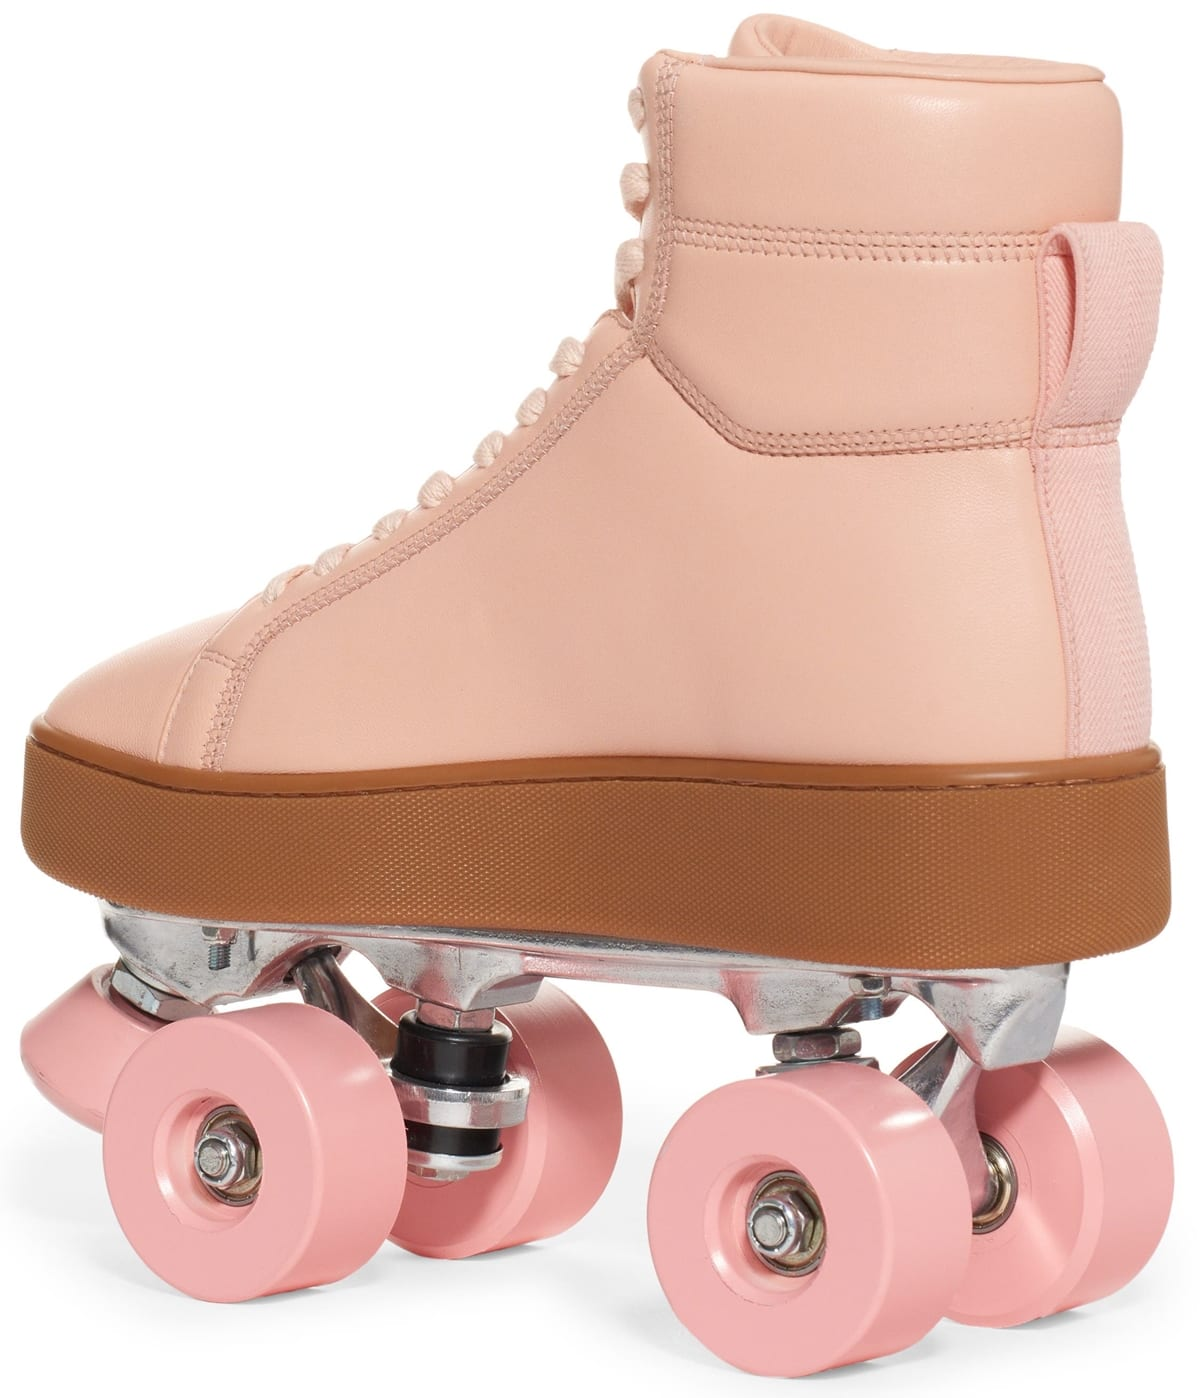 High top silhouette, pink leather sneaker skates with tonal four wheel base and stopper